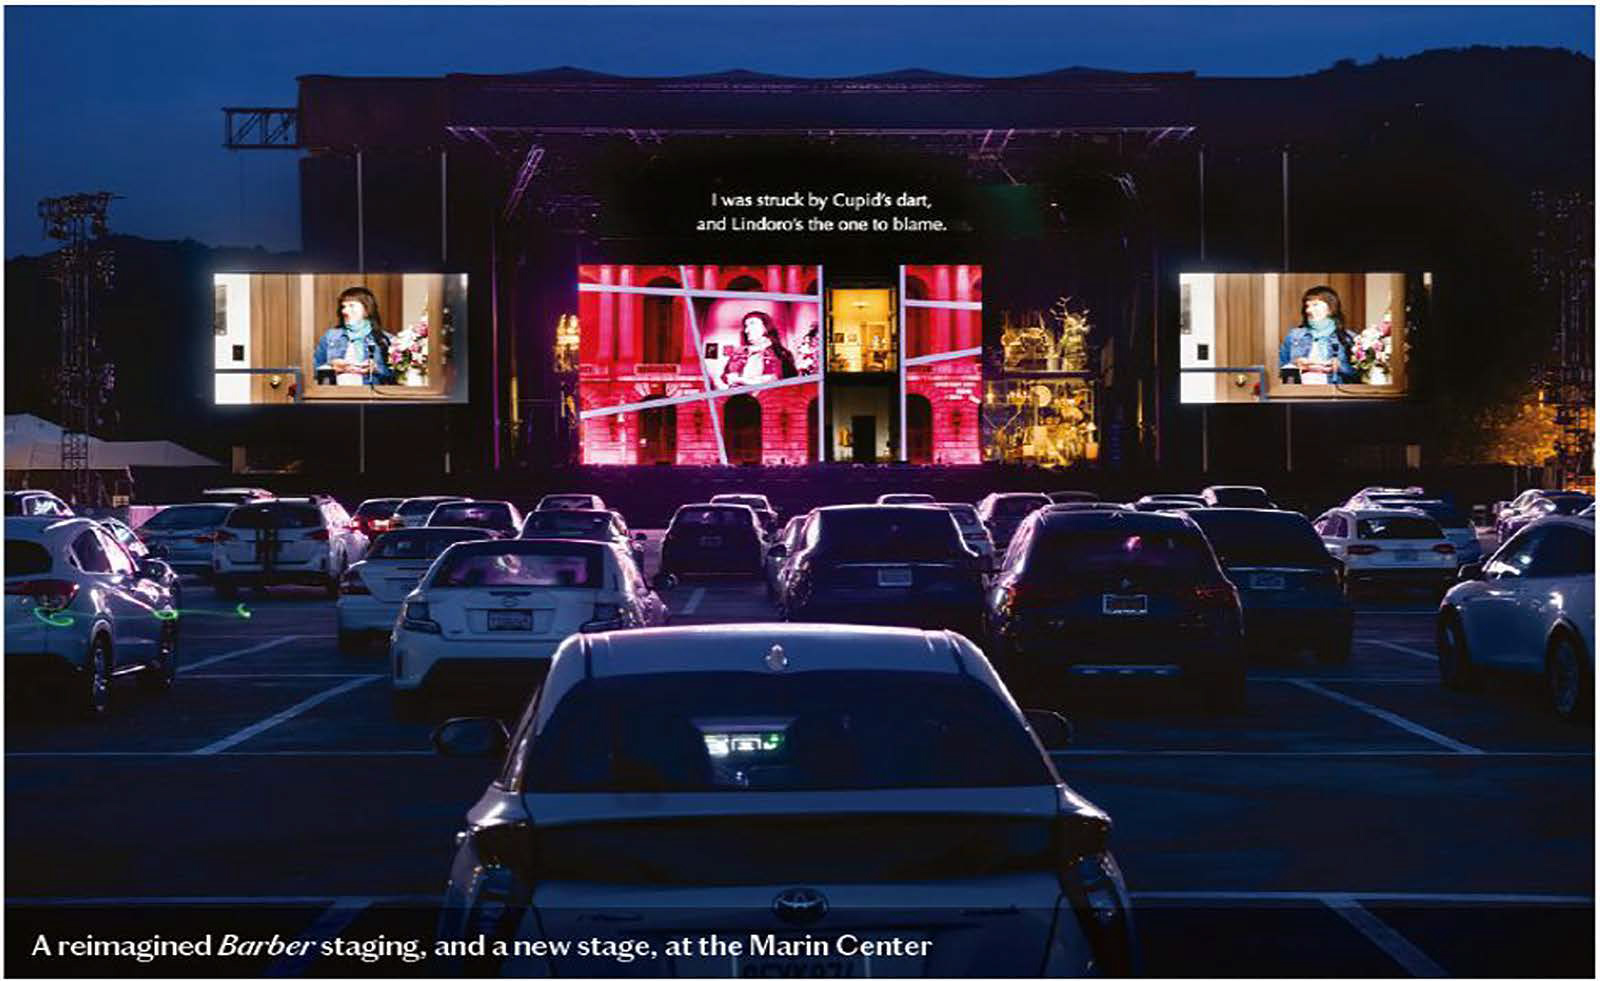 A reimagined Barber staging, and a new stage, at the Marin Center